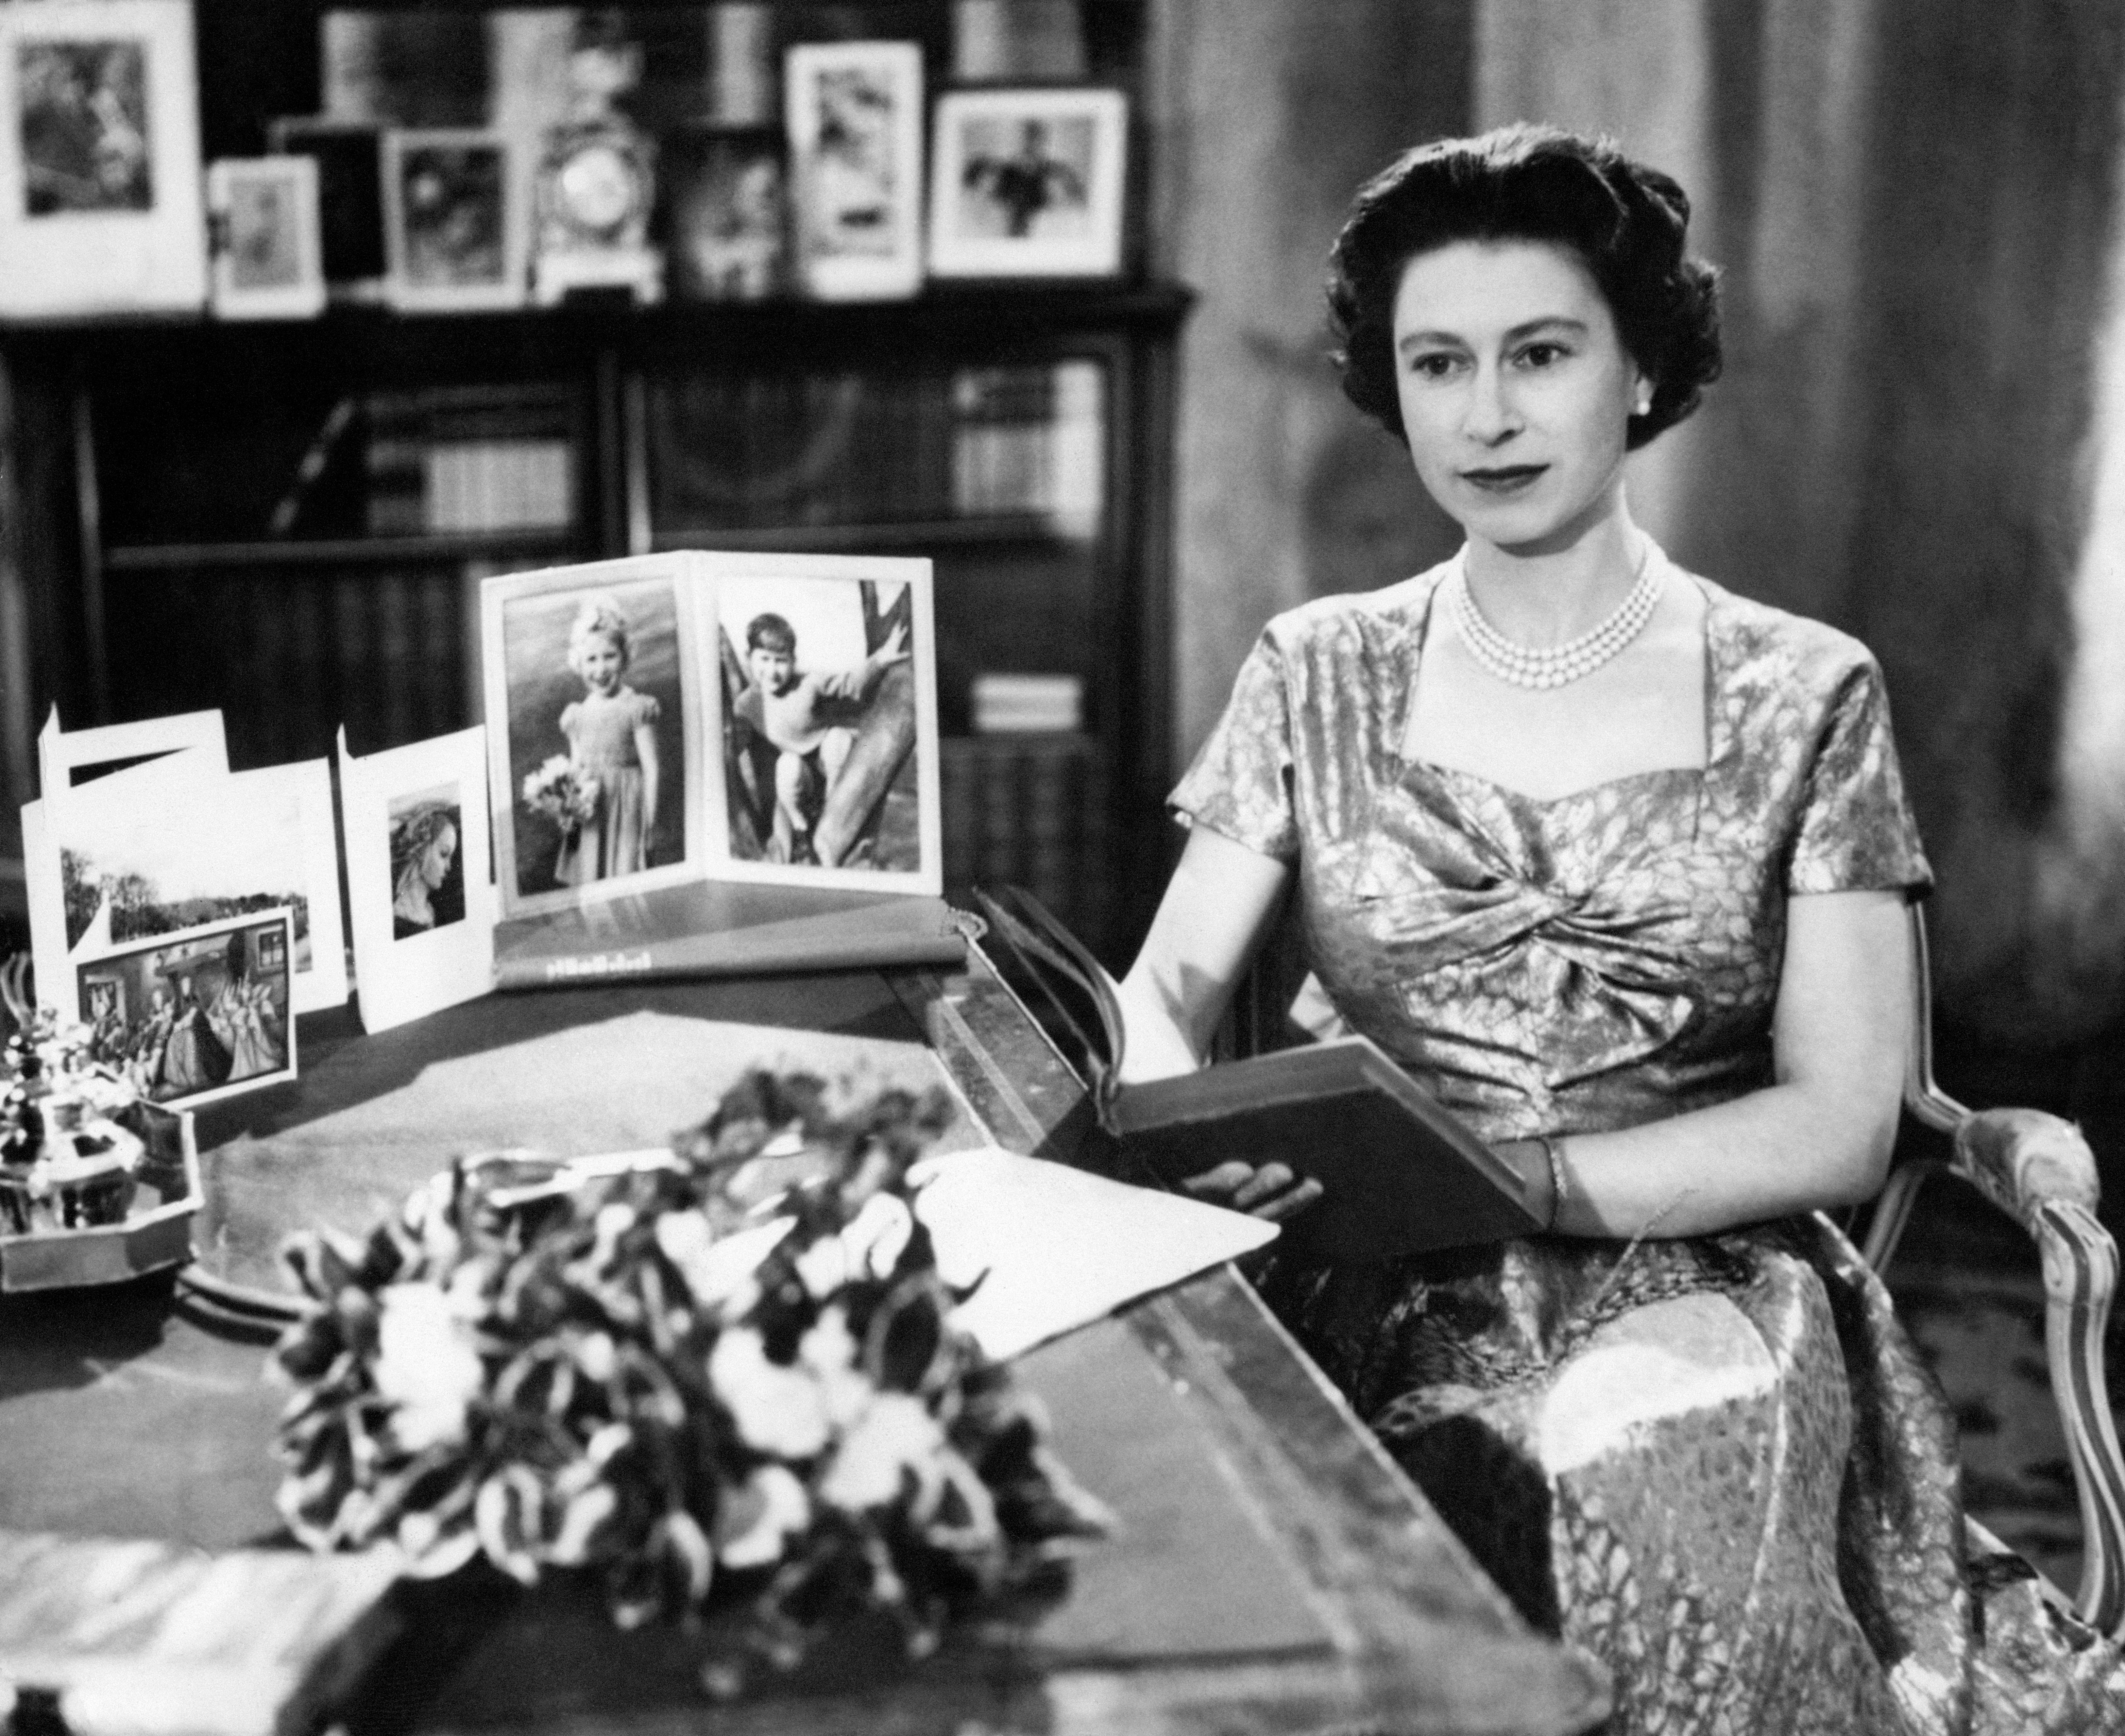 The Queen, in a gold lame dress, is seen in the Long Library at Sandringham shortly after making the traditional Christmas Day broadcast to the nation. On the desk are portraits of Prince Charles and Princess Anne. The Queen is holding the copy of 'Pilgrim's Progress', from which she read a few lines during her message. The broadcast was televised this year for the first time and was carried by both the BBC and ITV. It was the 25th anniversary of the first radio message to the Commonwealth by her grandfather, King George V.